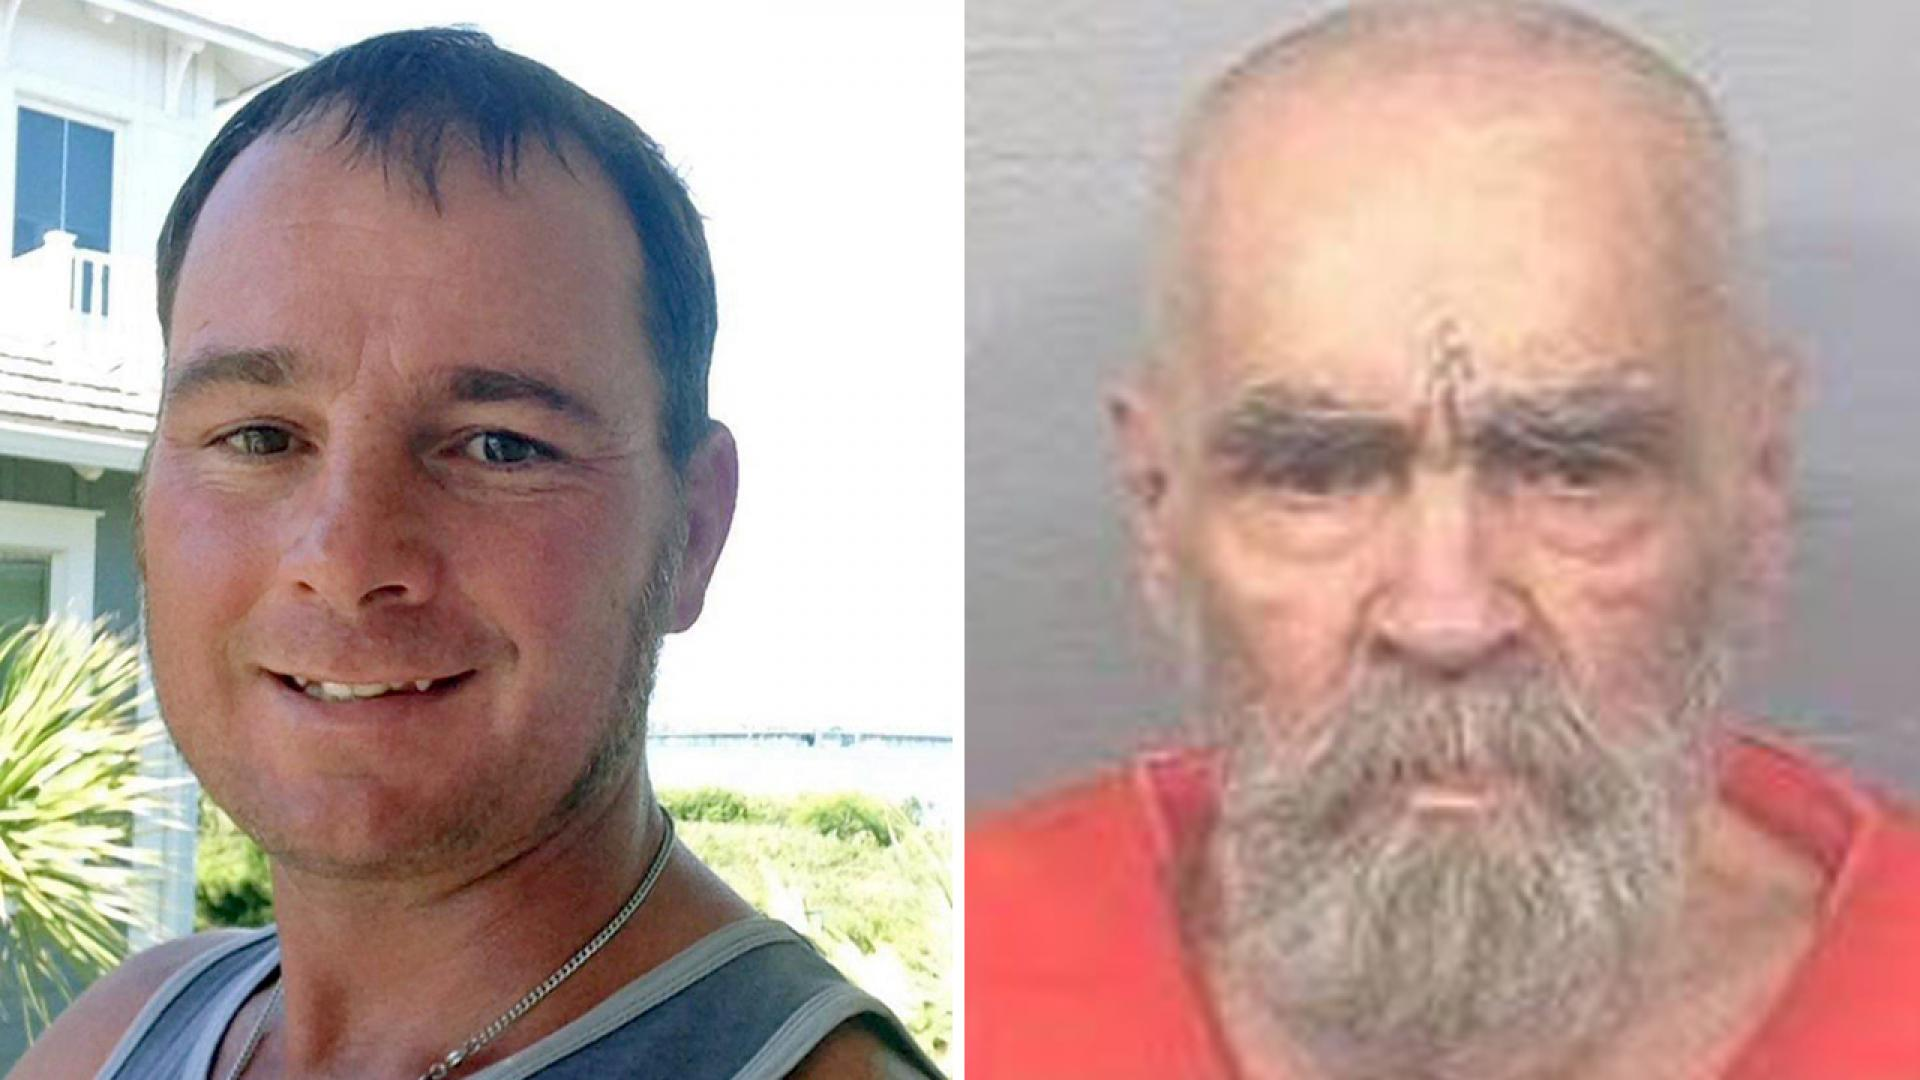 Jason Freeman says he is committed to making sure his grandfather Charles Manson's remains are properly handled.